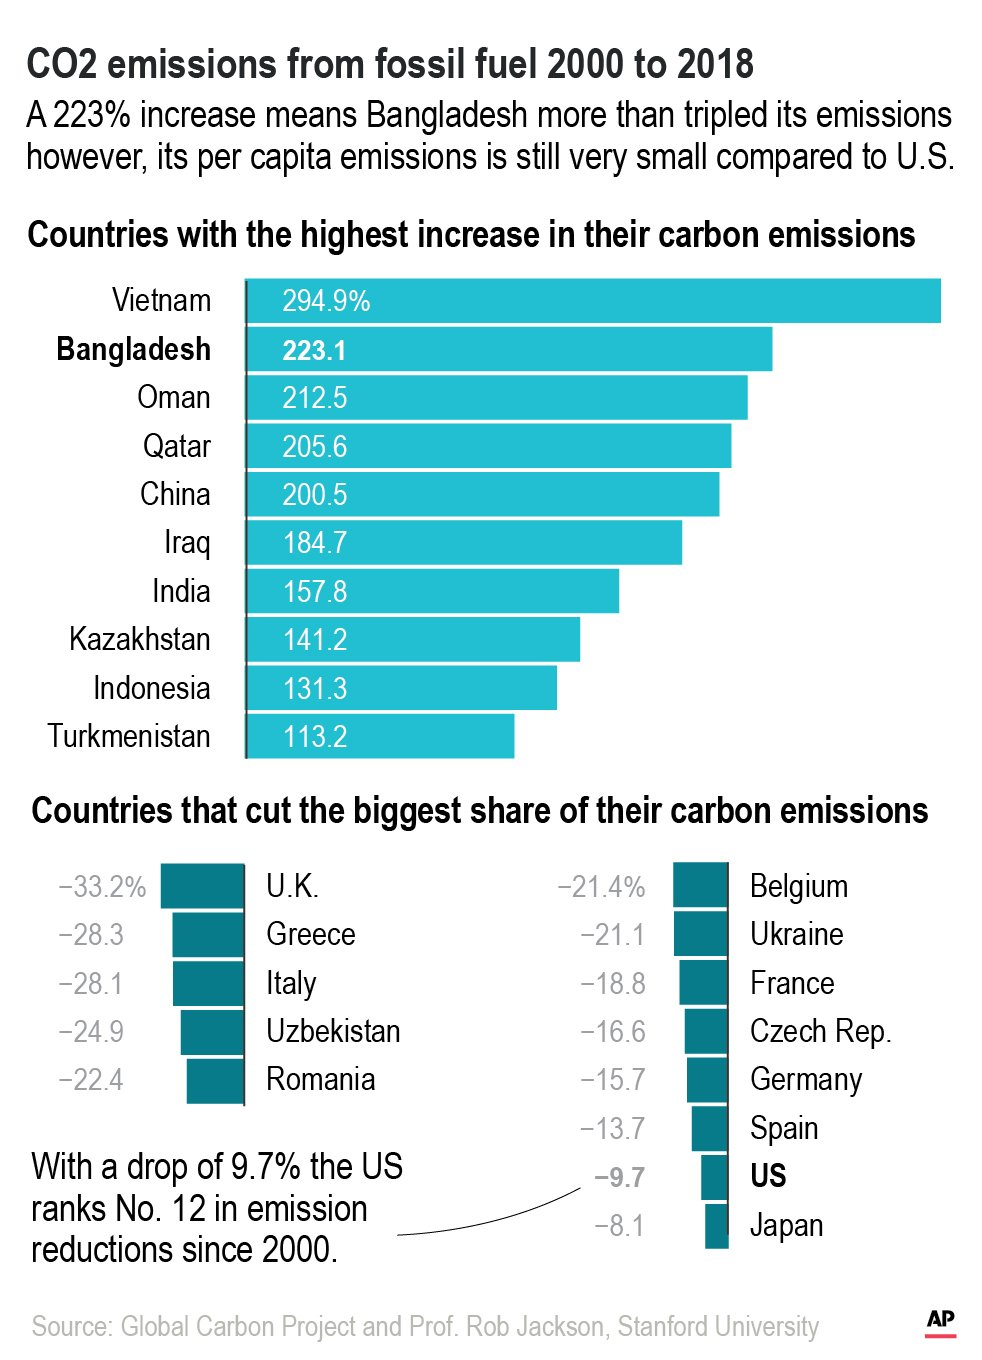 "A series of bar graphs titled ""CO2 emissions from fossil fuel 2000 to 2018."" The top graph shows the 10 countries with the highest increase in their carbon emissions, ranging from Vietnam (294.9%) to Turkmenistan (113.2%). A note reads ""A 223% increase means Bangladesh more than tripled its emissions however, its per capita emissions is still very small compared to U.S."" The bottom graphs show the 13 countries that cut the biggest share of their carbon emissions, ranging from the U.K. (-33.2%) to Japan (-8.1%). A note reads ""With a drop of 9.7% the US ranks No. 12 in emissions reductions since 2000.)"